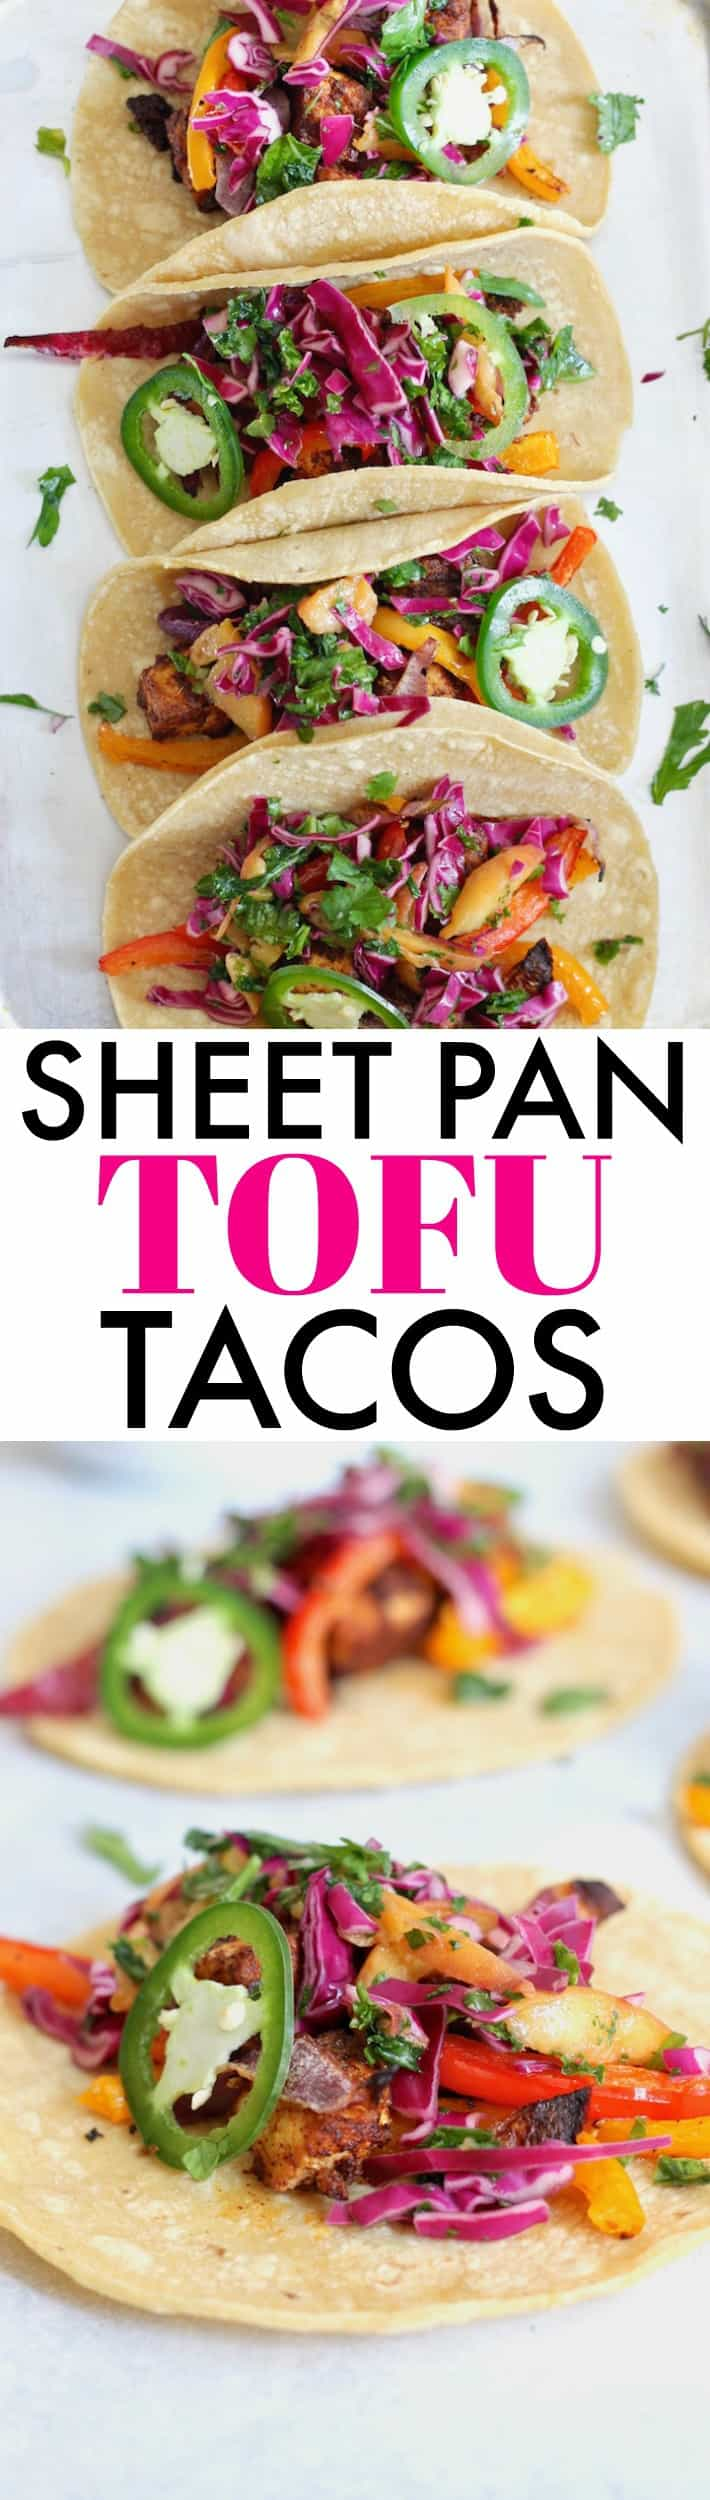 Change the tofu game with these delicious Zesty Sheet Pan Tofu Tacos with Peach Kale Slaw! A fresh, flavorful, wholesome meal the entire family will devour. Vegan + gluten-free.